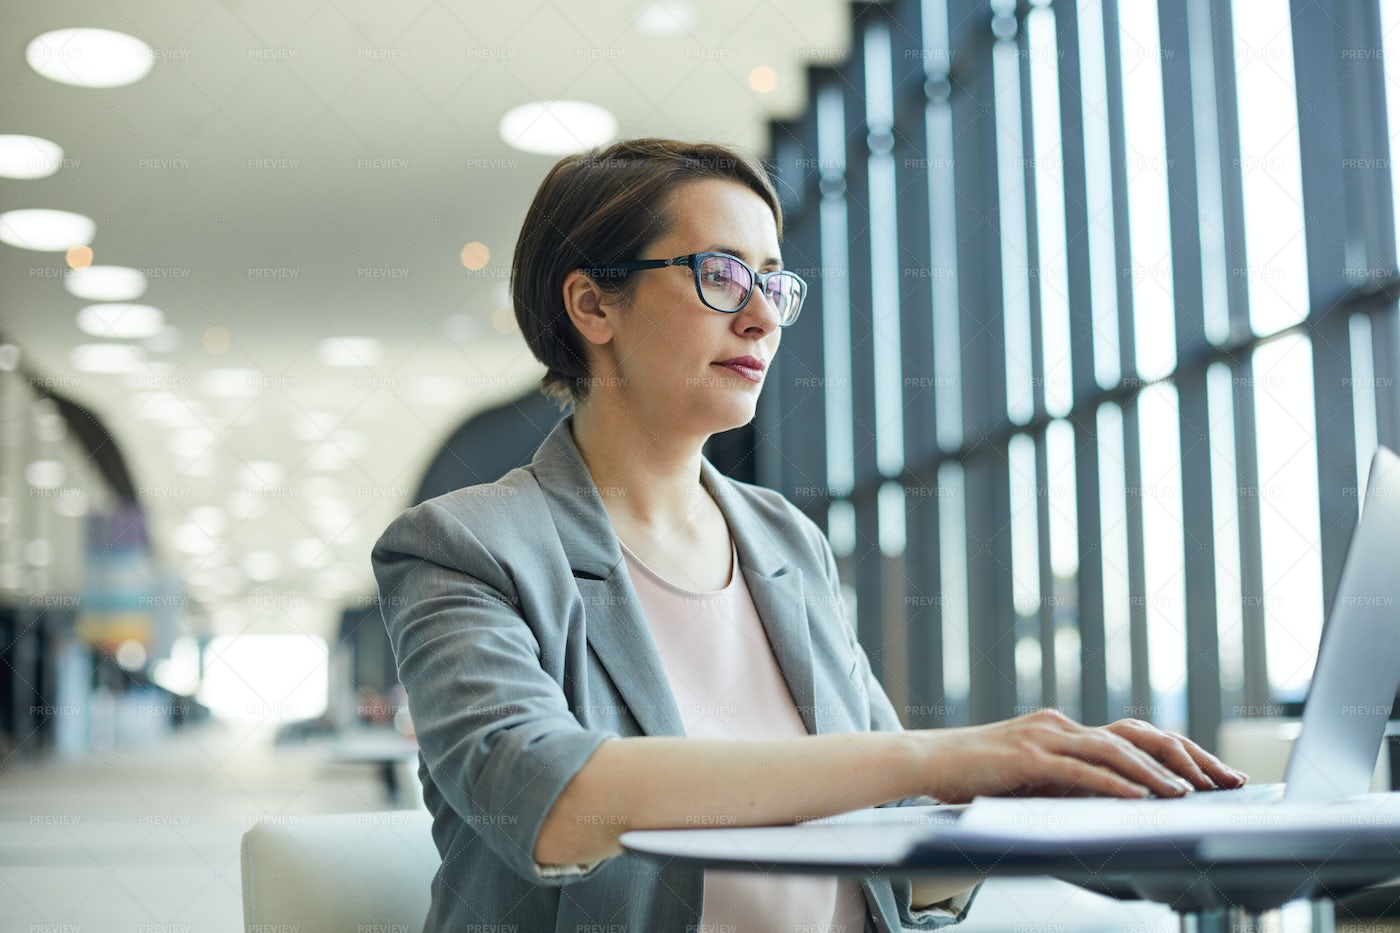 Business Lady Working In Lobby: Stock Photos